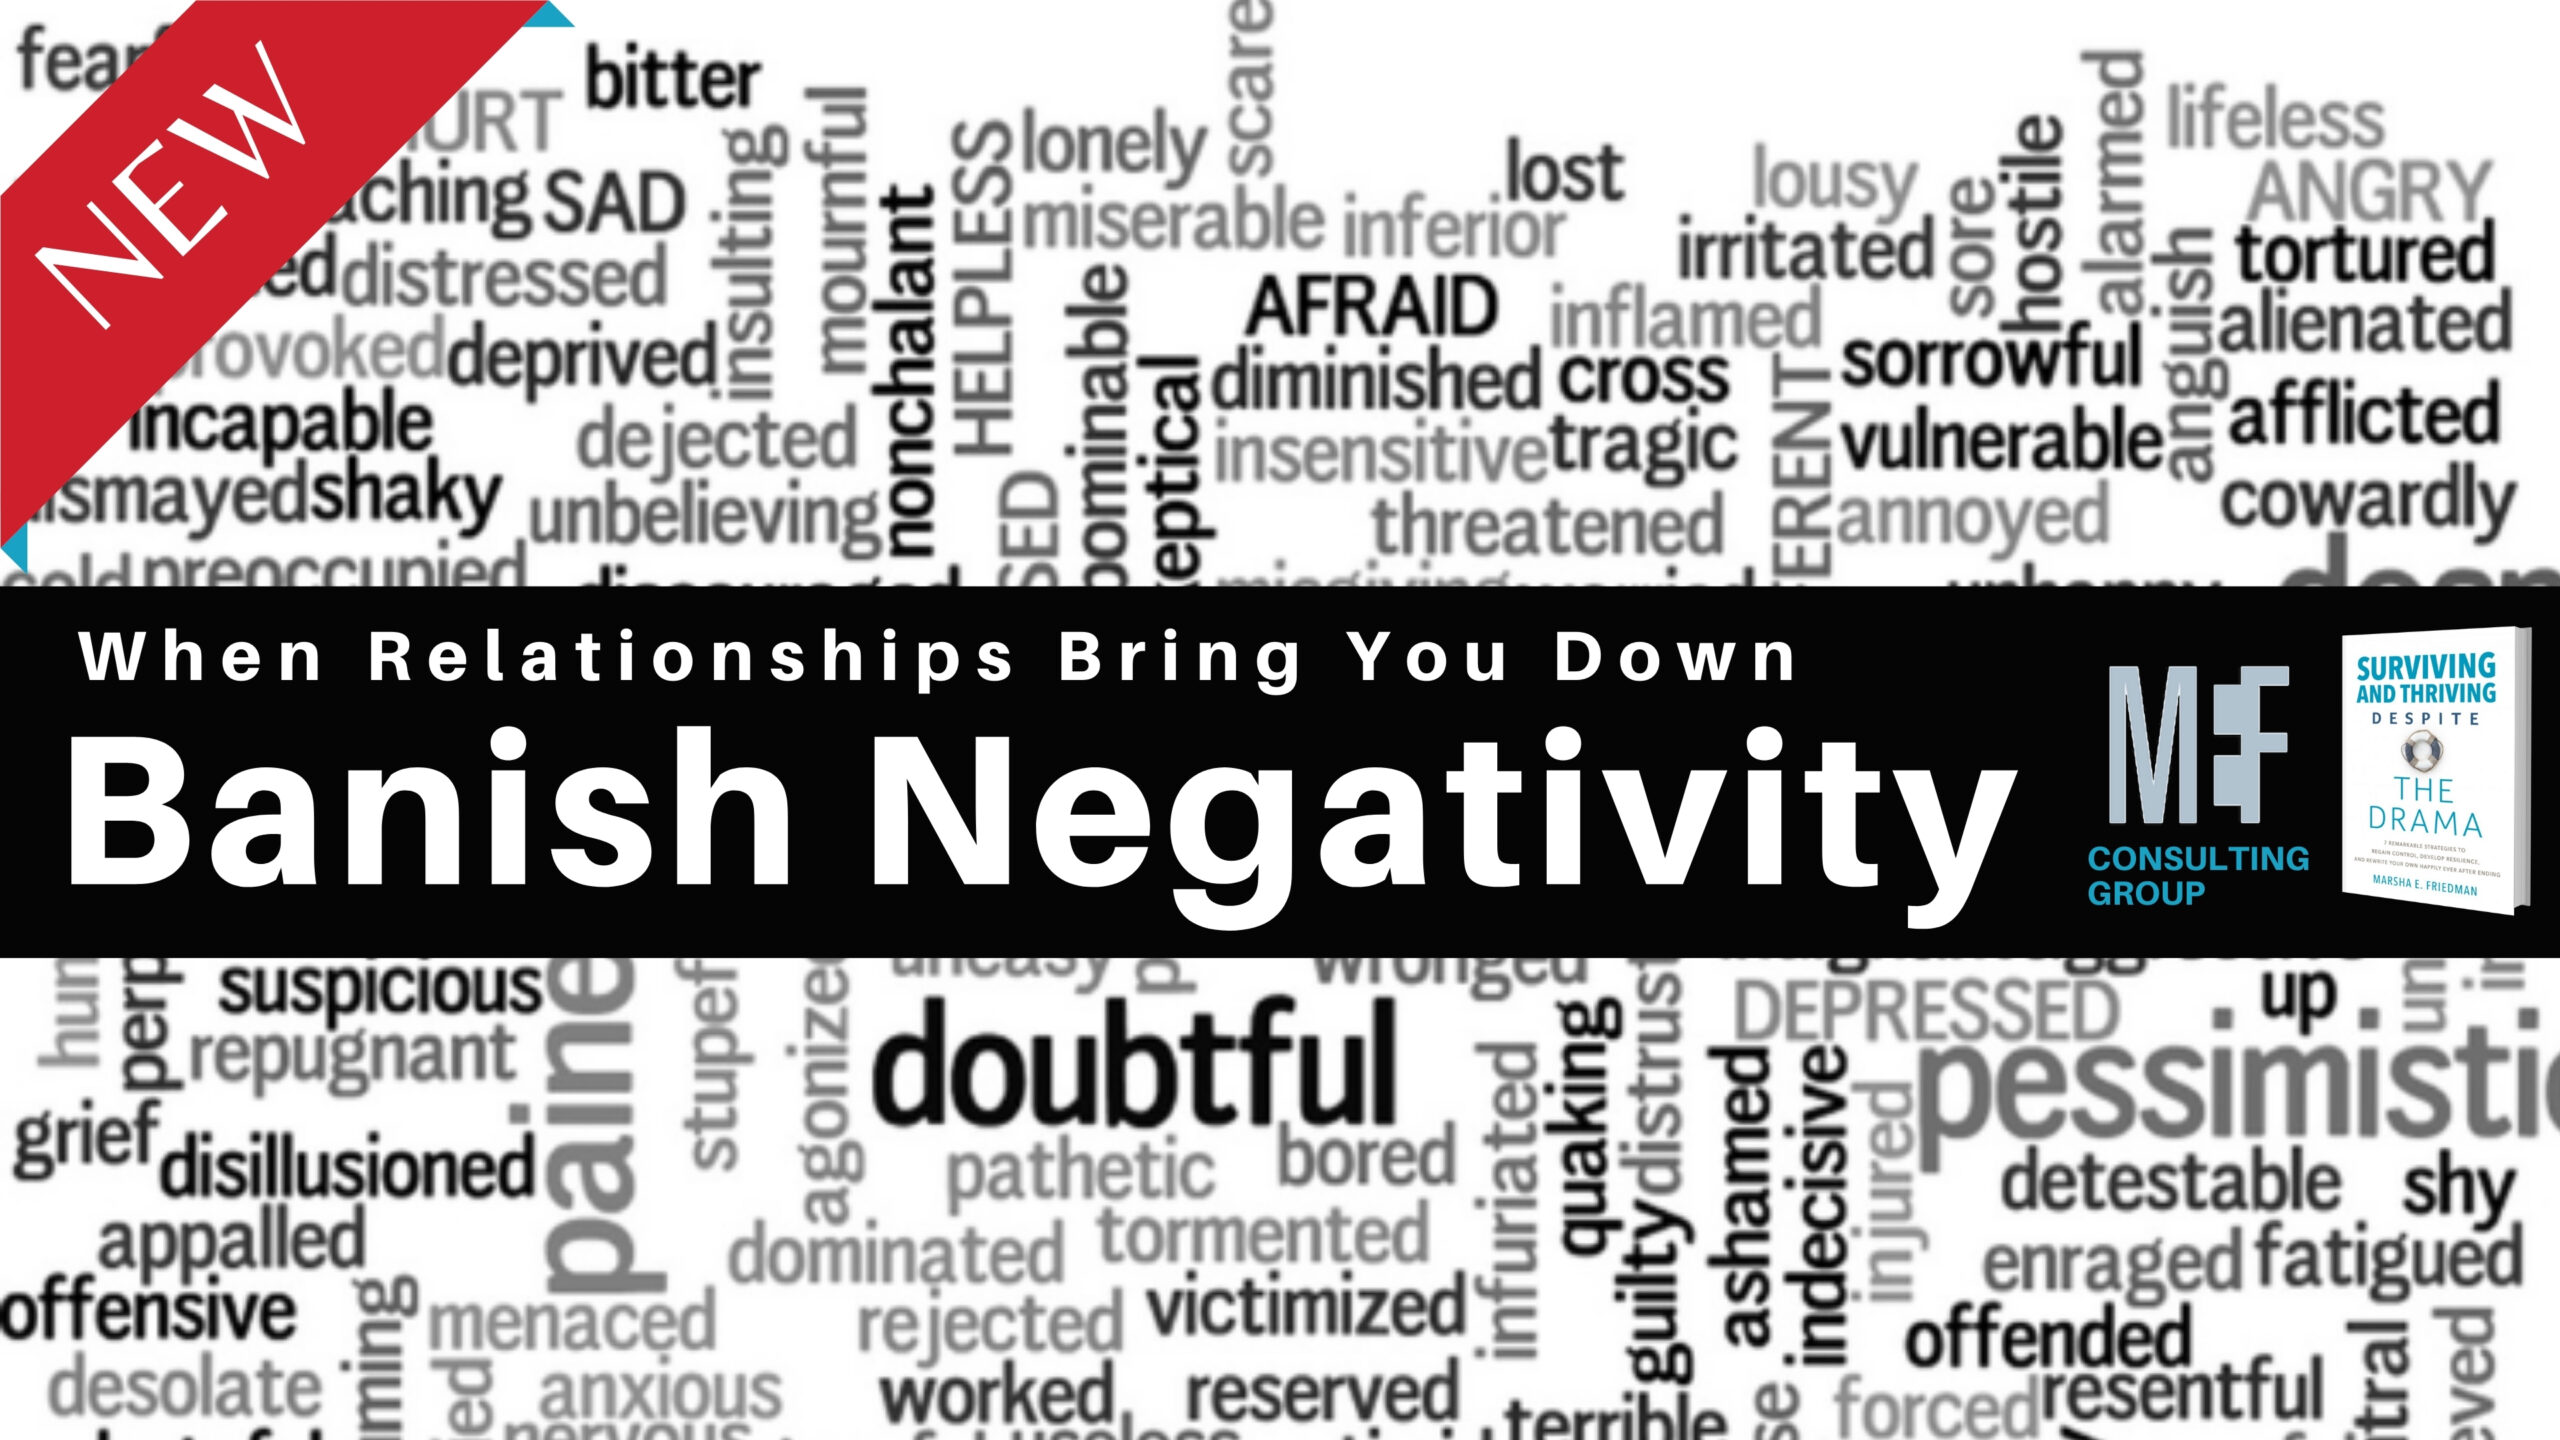 Banish Negativity and Toxic Relationships Marsha Friedman